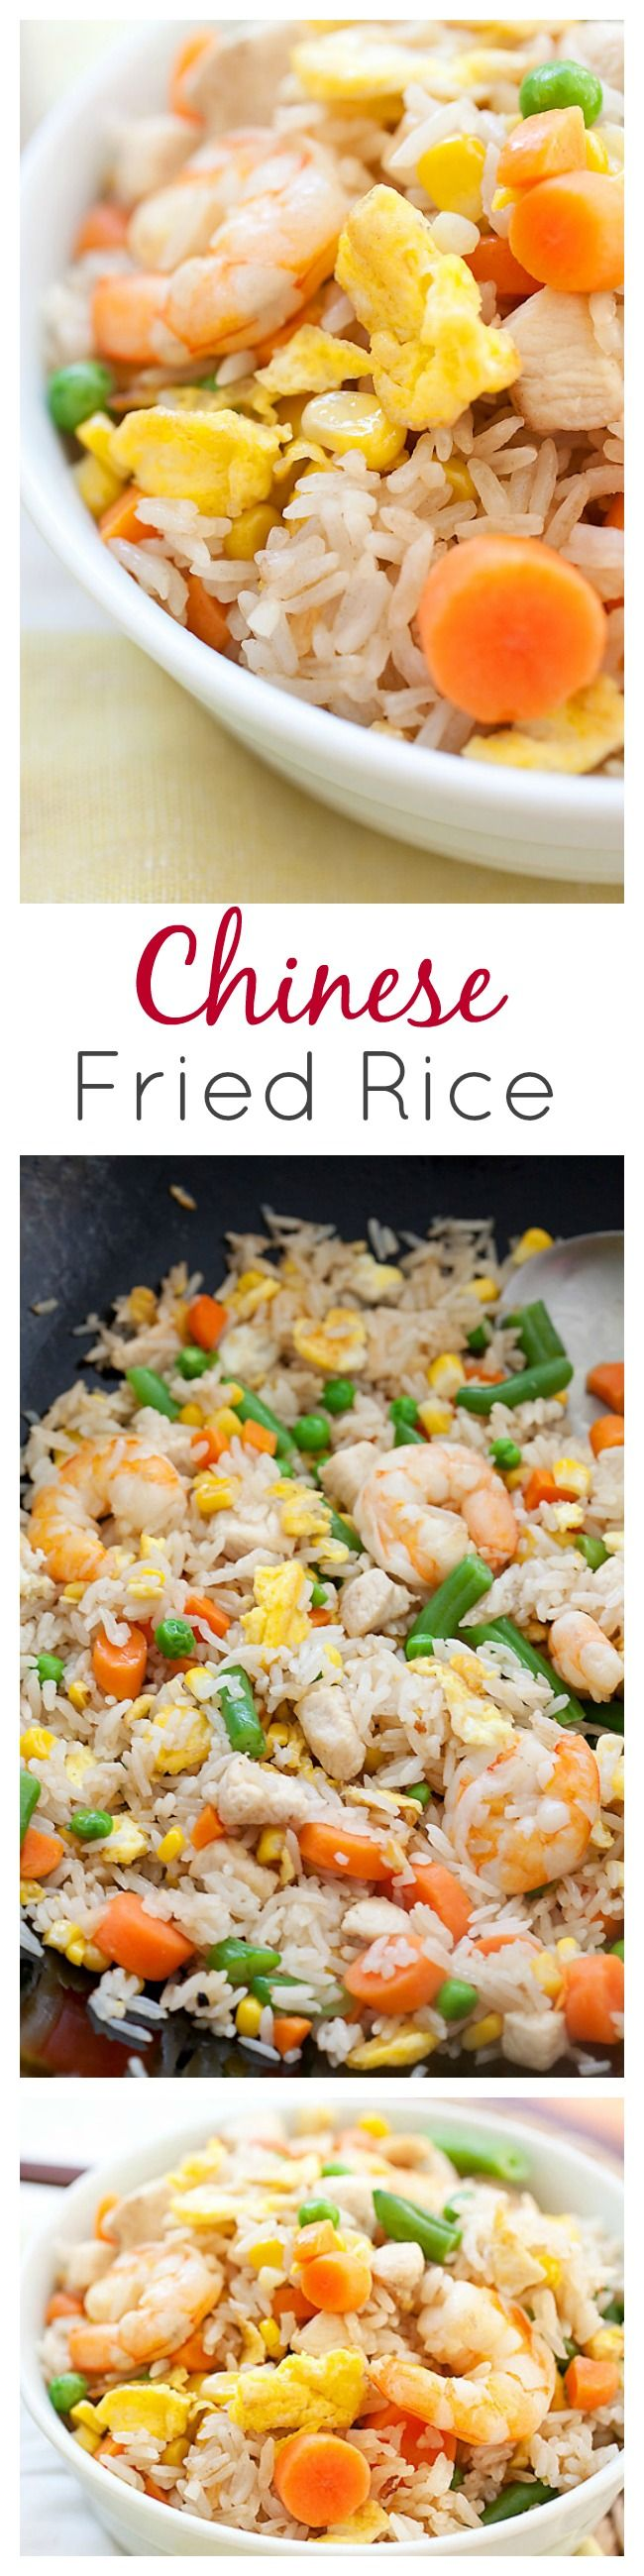 Fried Rice is a popular Chinese food. Easy fried rice recipe with rice, eggs, chicken, shrimp and tastes so much better than Chinese takeout | rasamalaysia.com